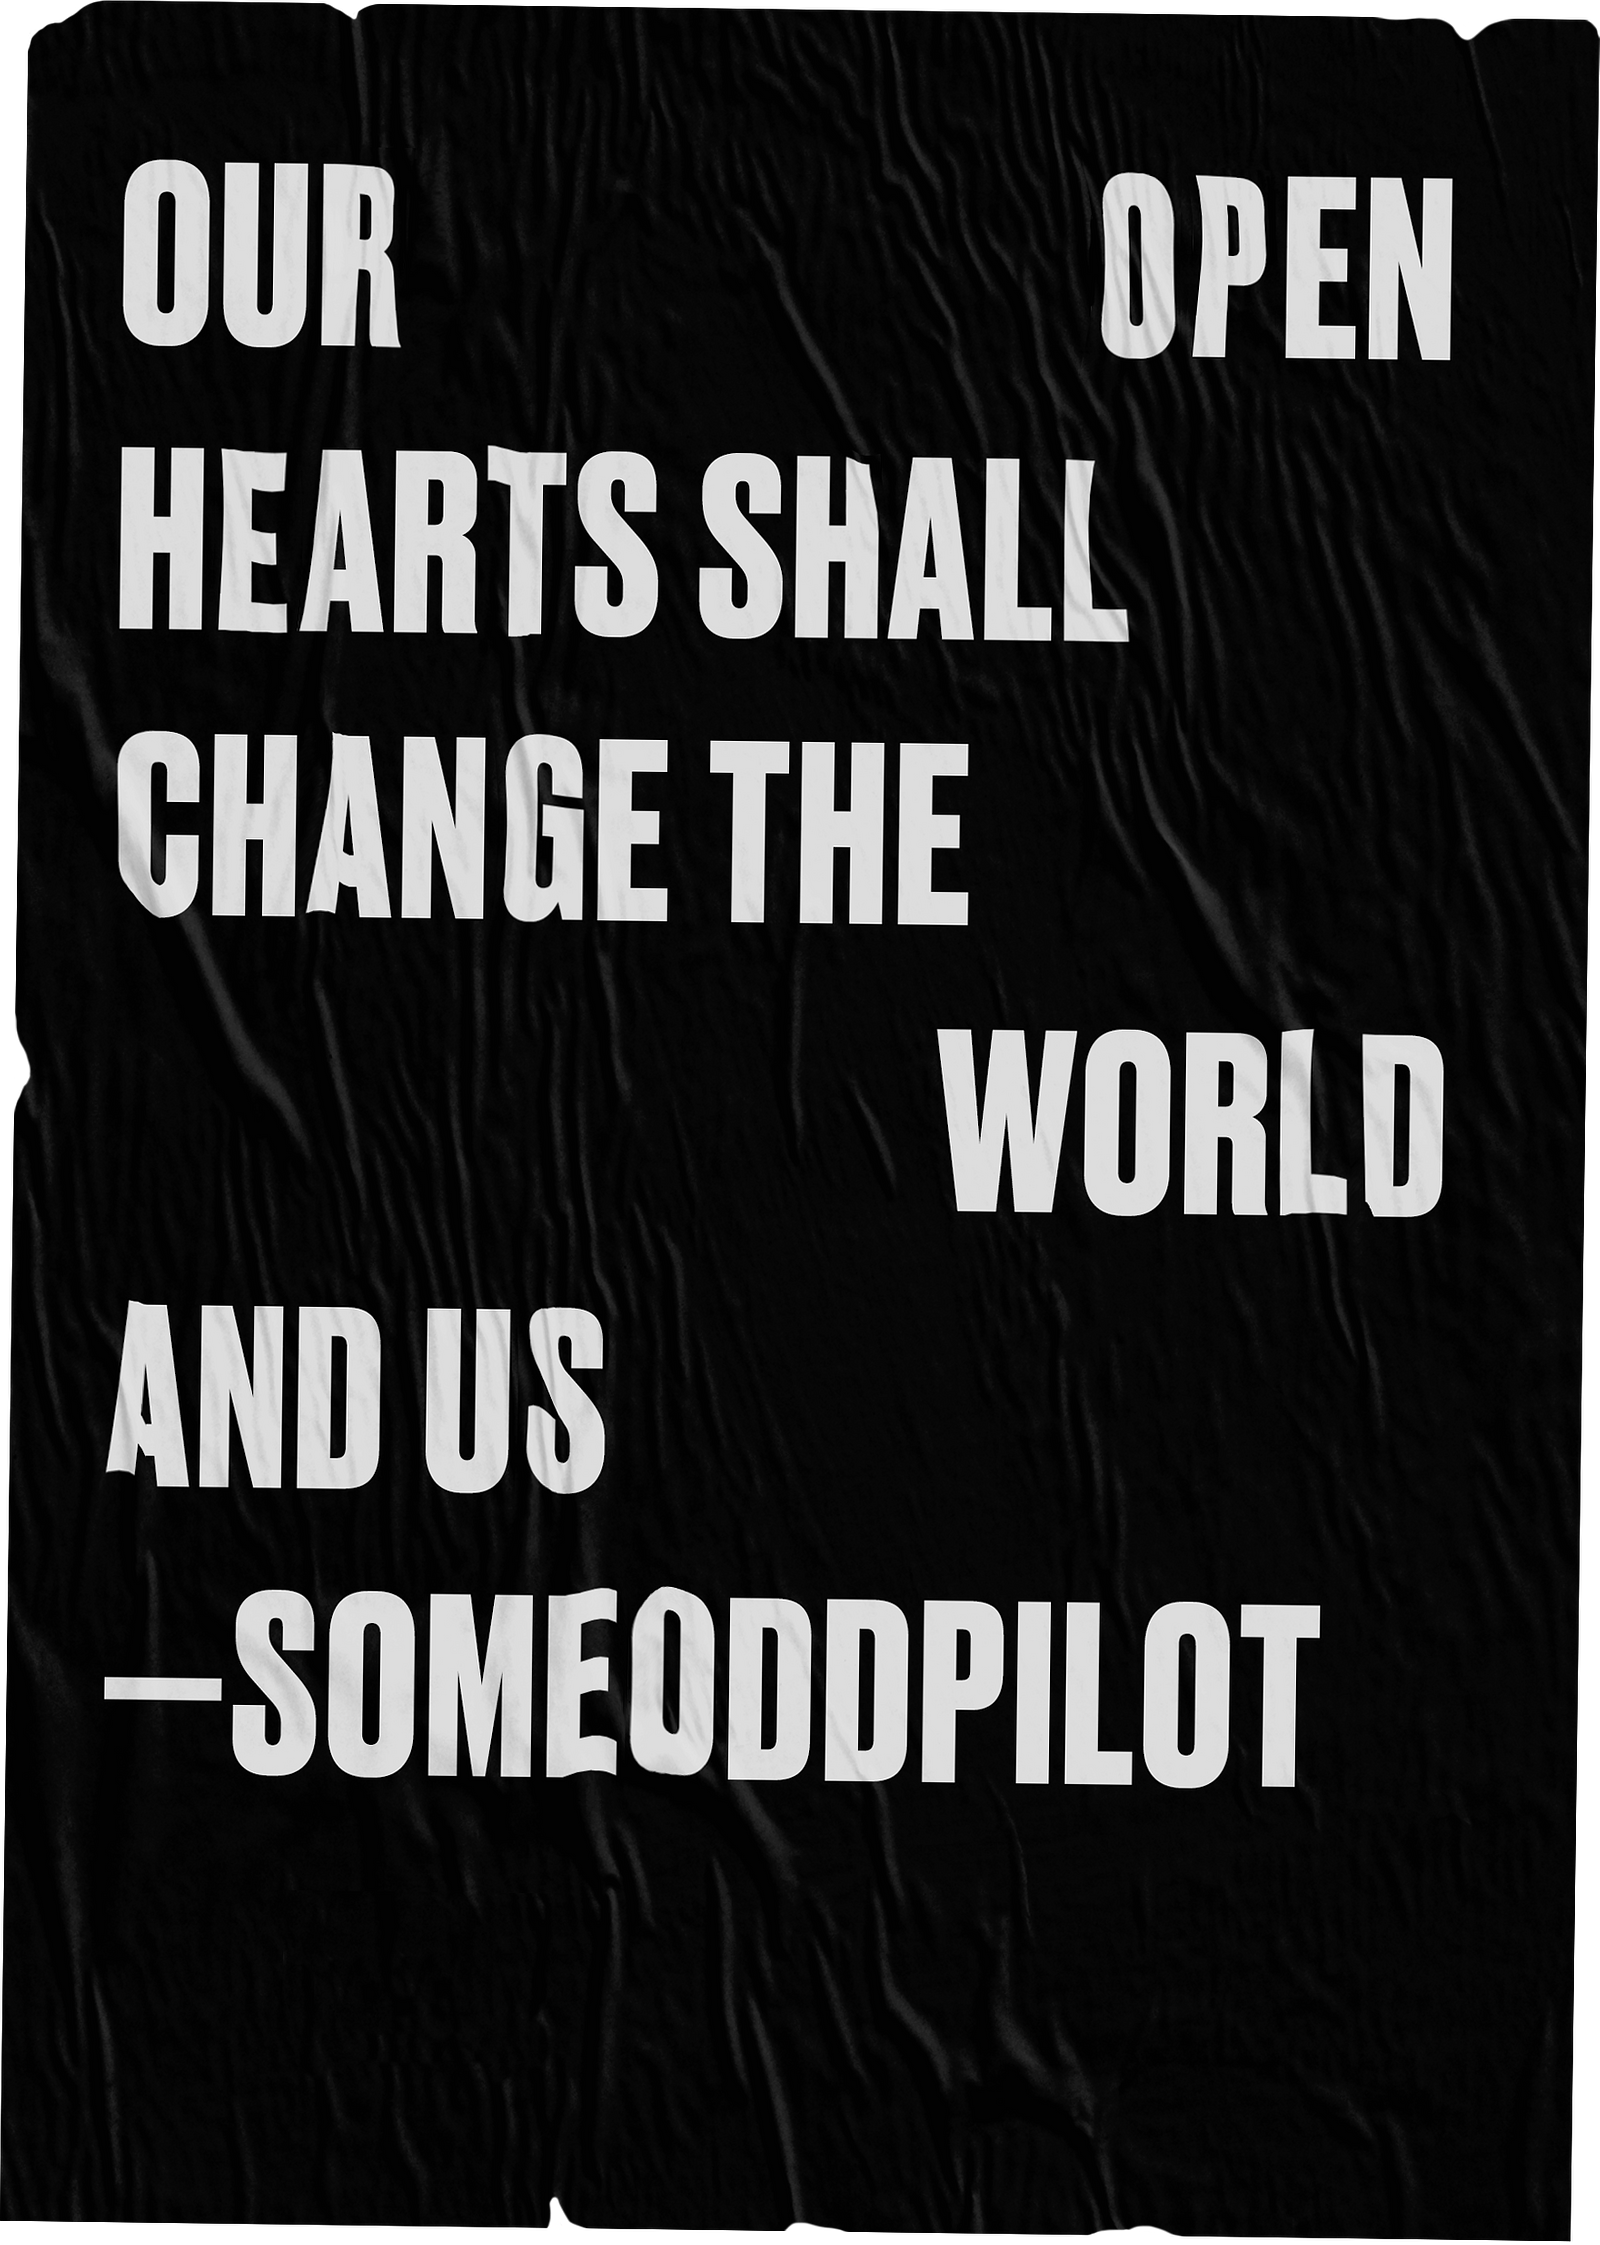 OUR OPEN HEARTS SHALL CHANGE THE WORLD AND US --SOMEODDPILOT